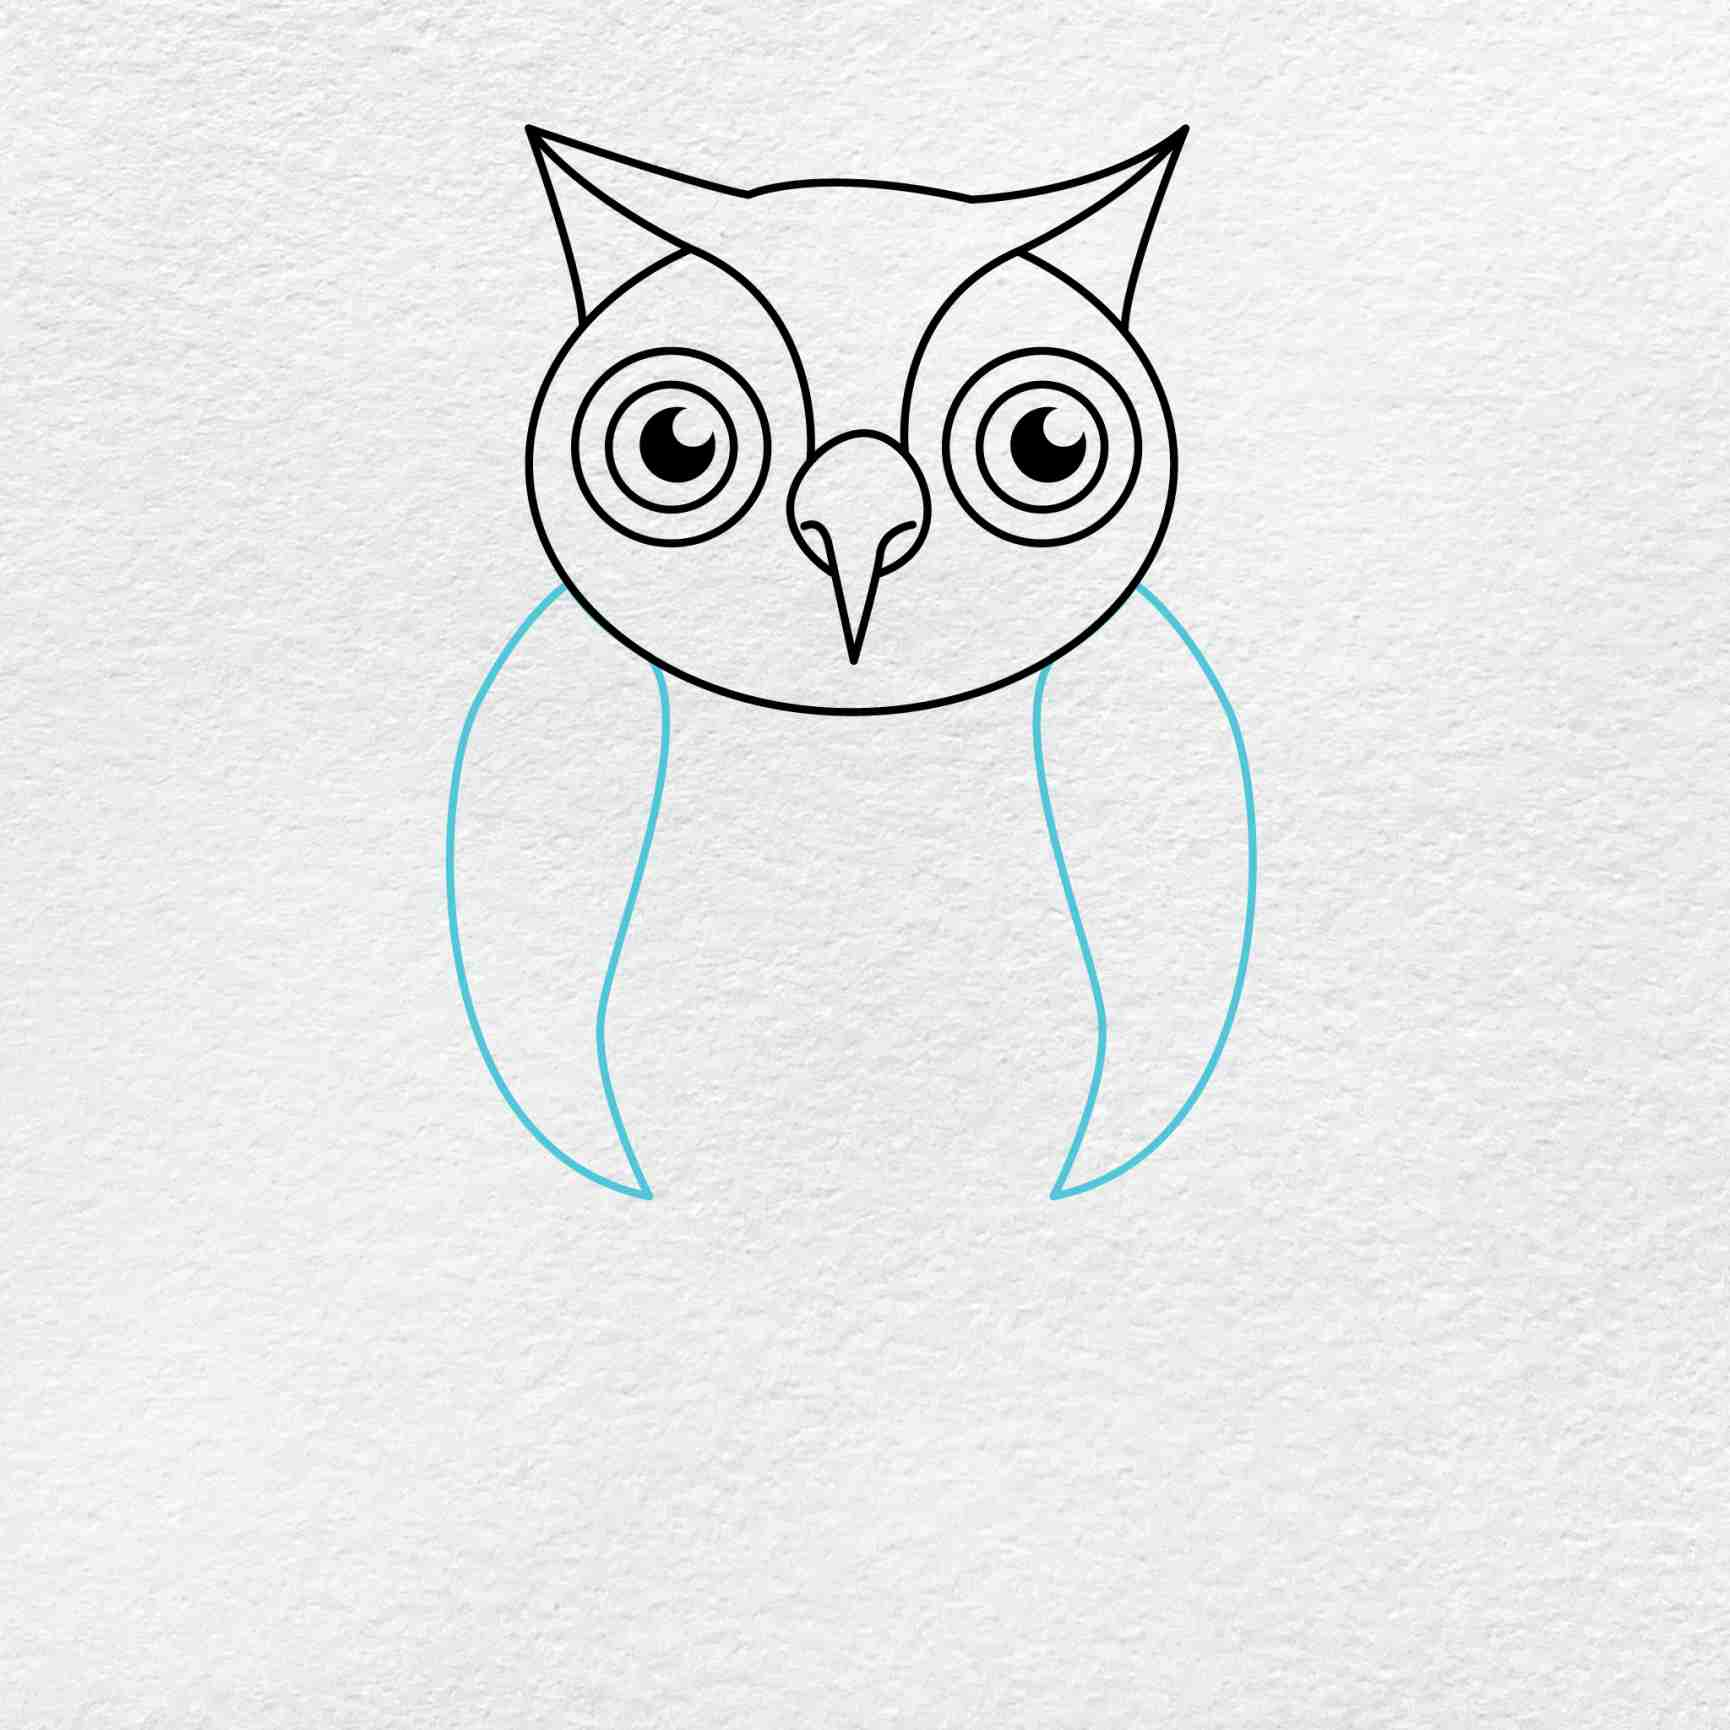 How To Draw An Owl: Step 5